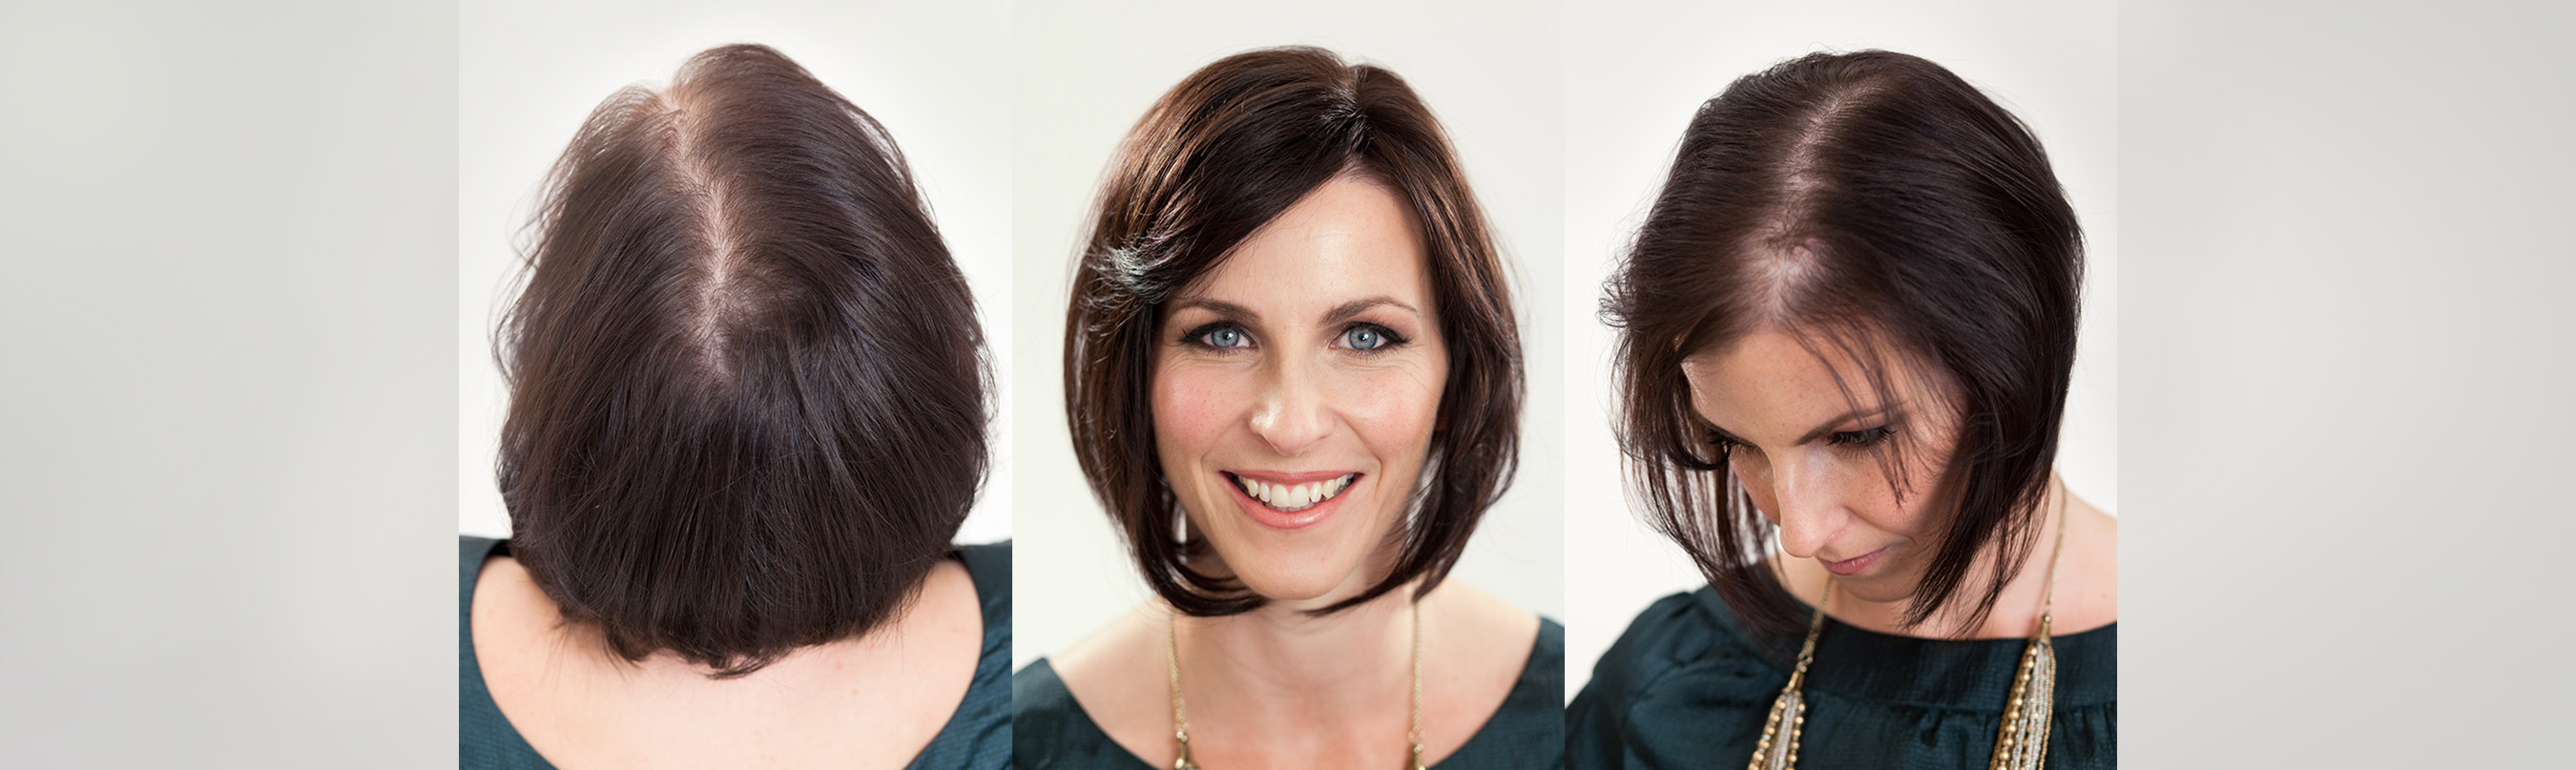 hair loss in women - transitions hair